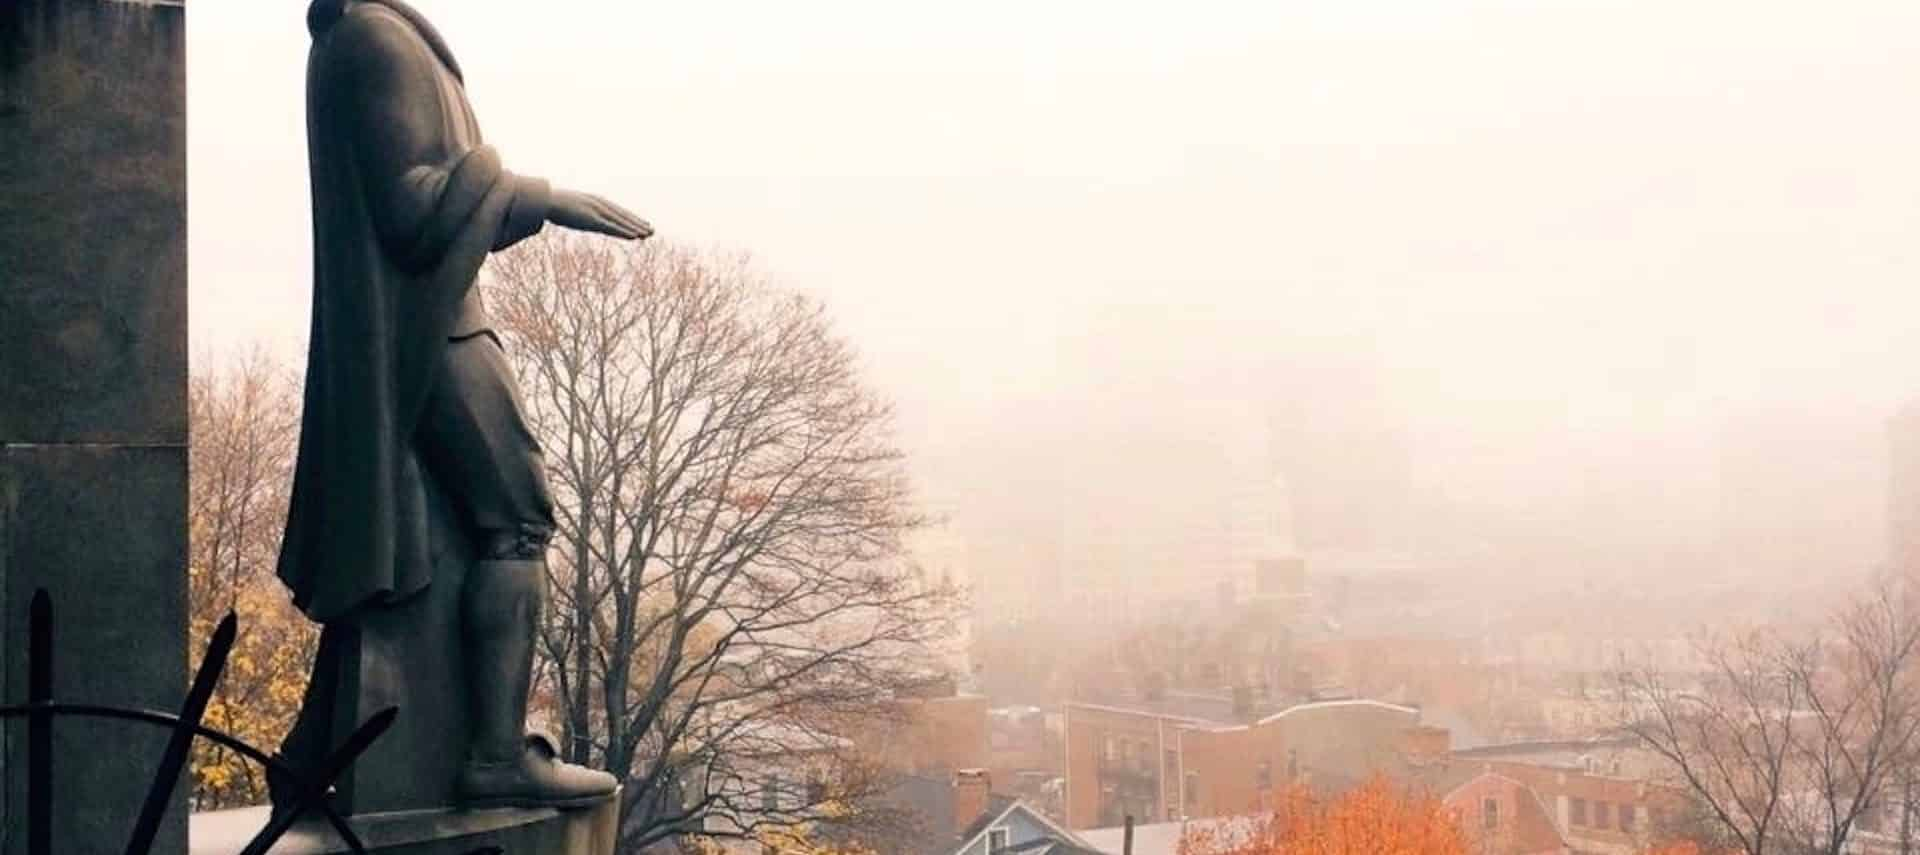 A large statue of Roger Williams situated on a hill overlooking Providence on a foggy fall day.